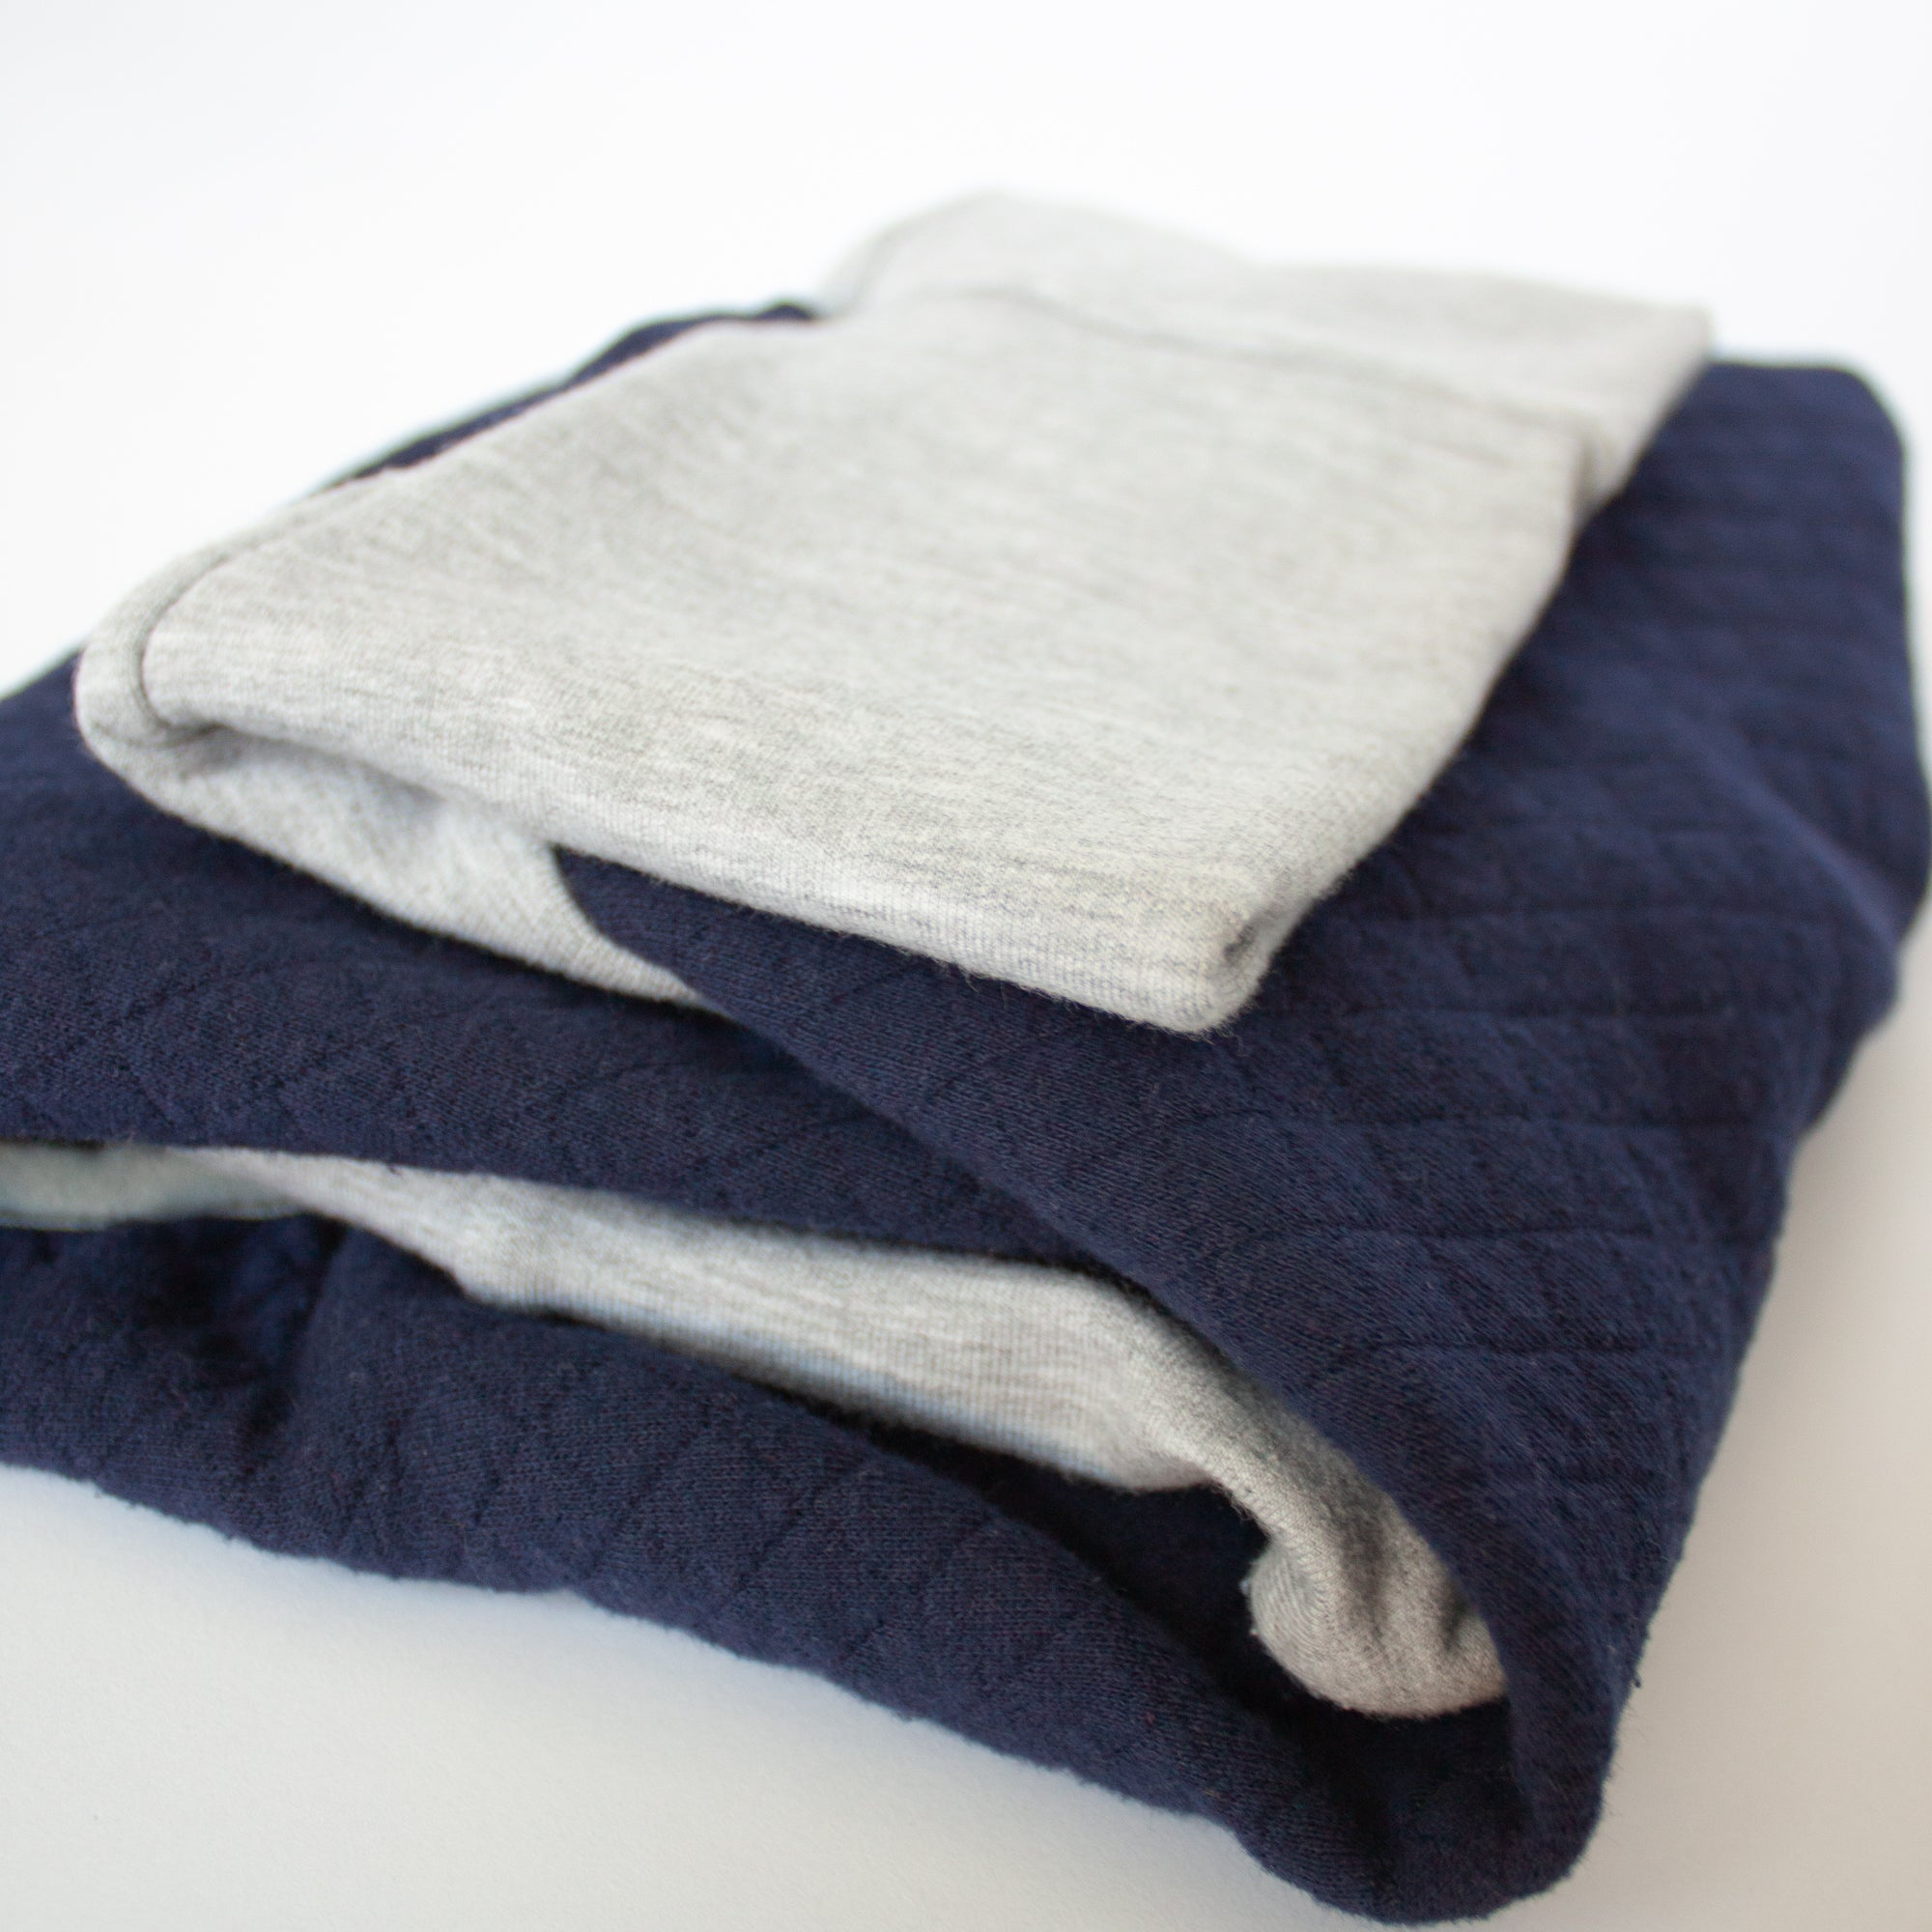 quilted dog pajamas navy blue and grey